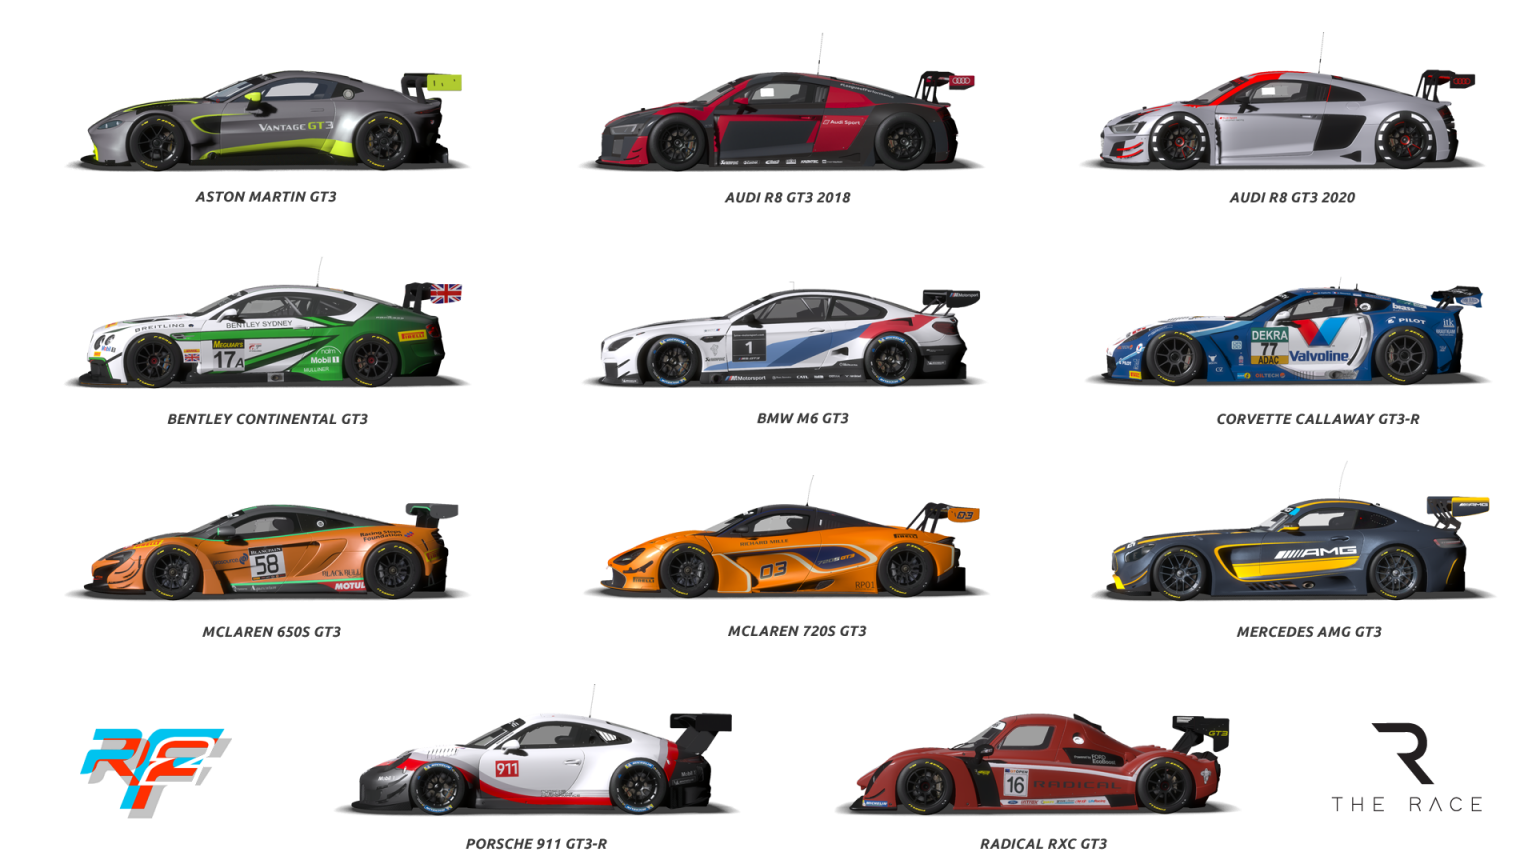 cars-together-1-1536x864.png